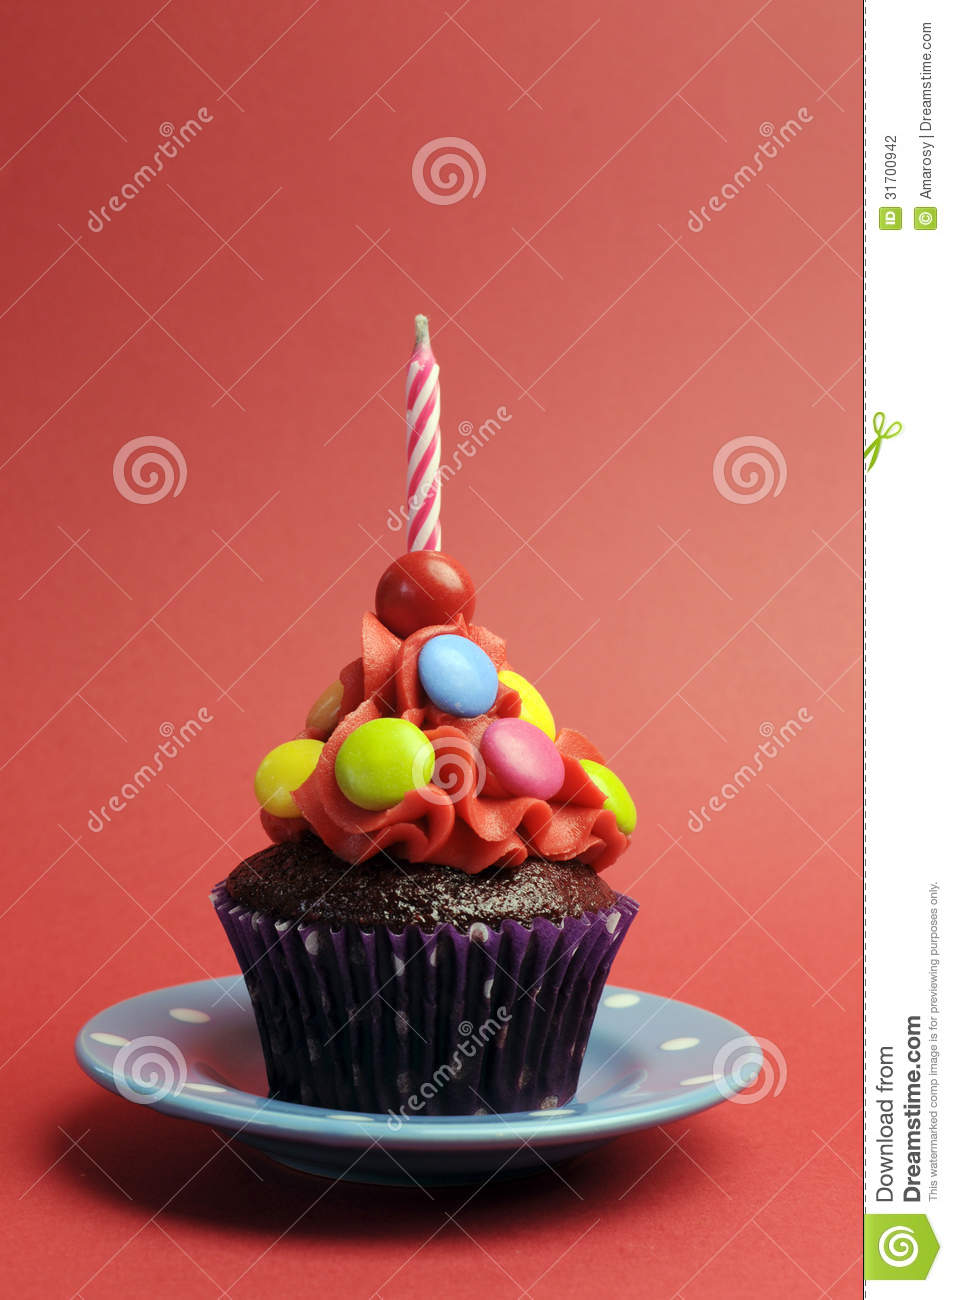 candy covered chocolate cupcake with red frosting and